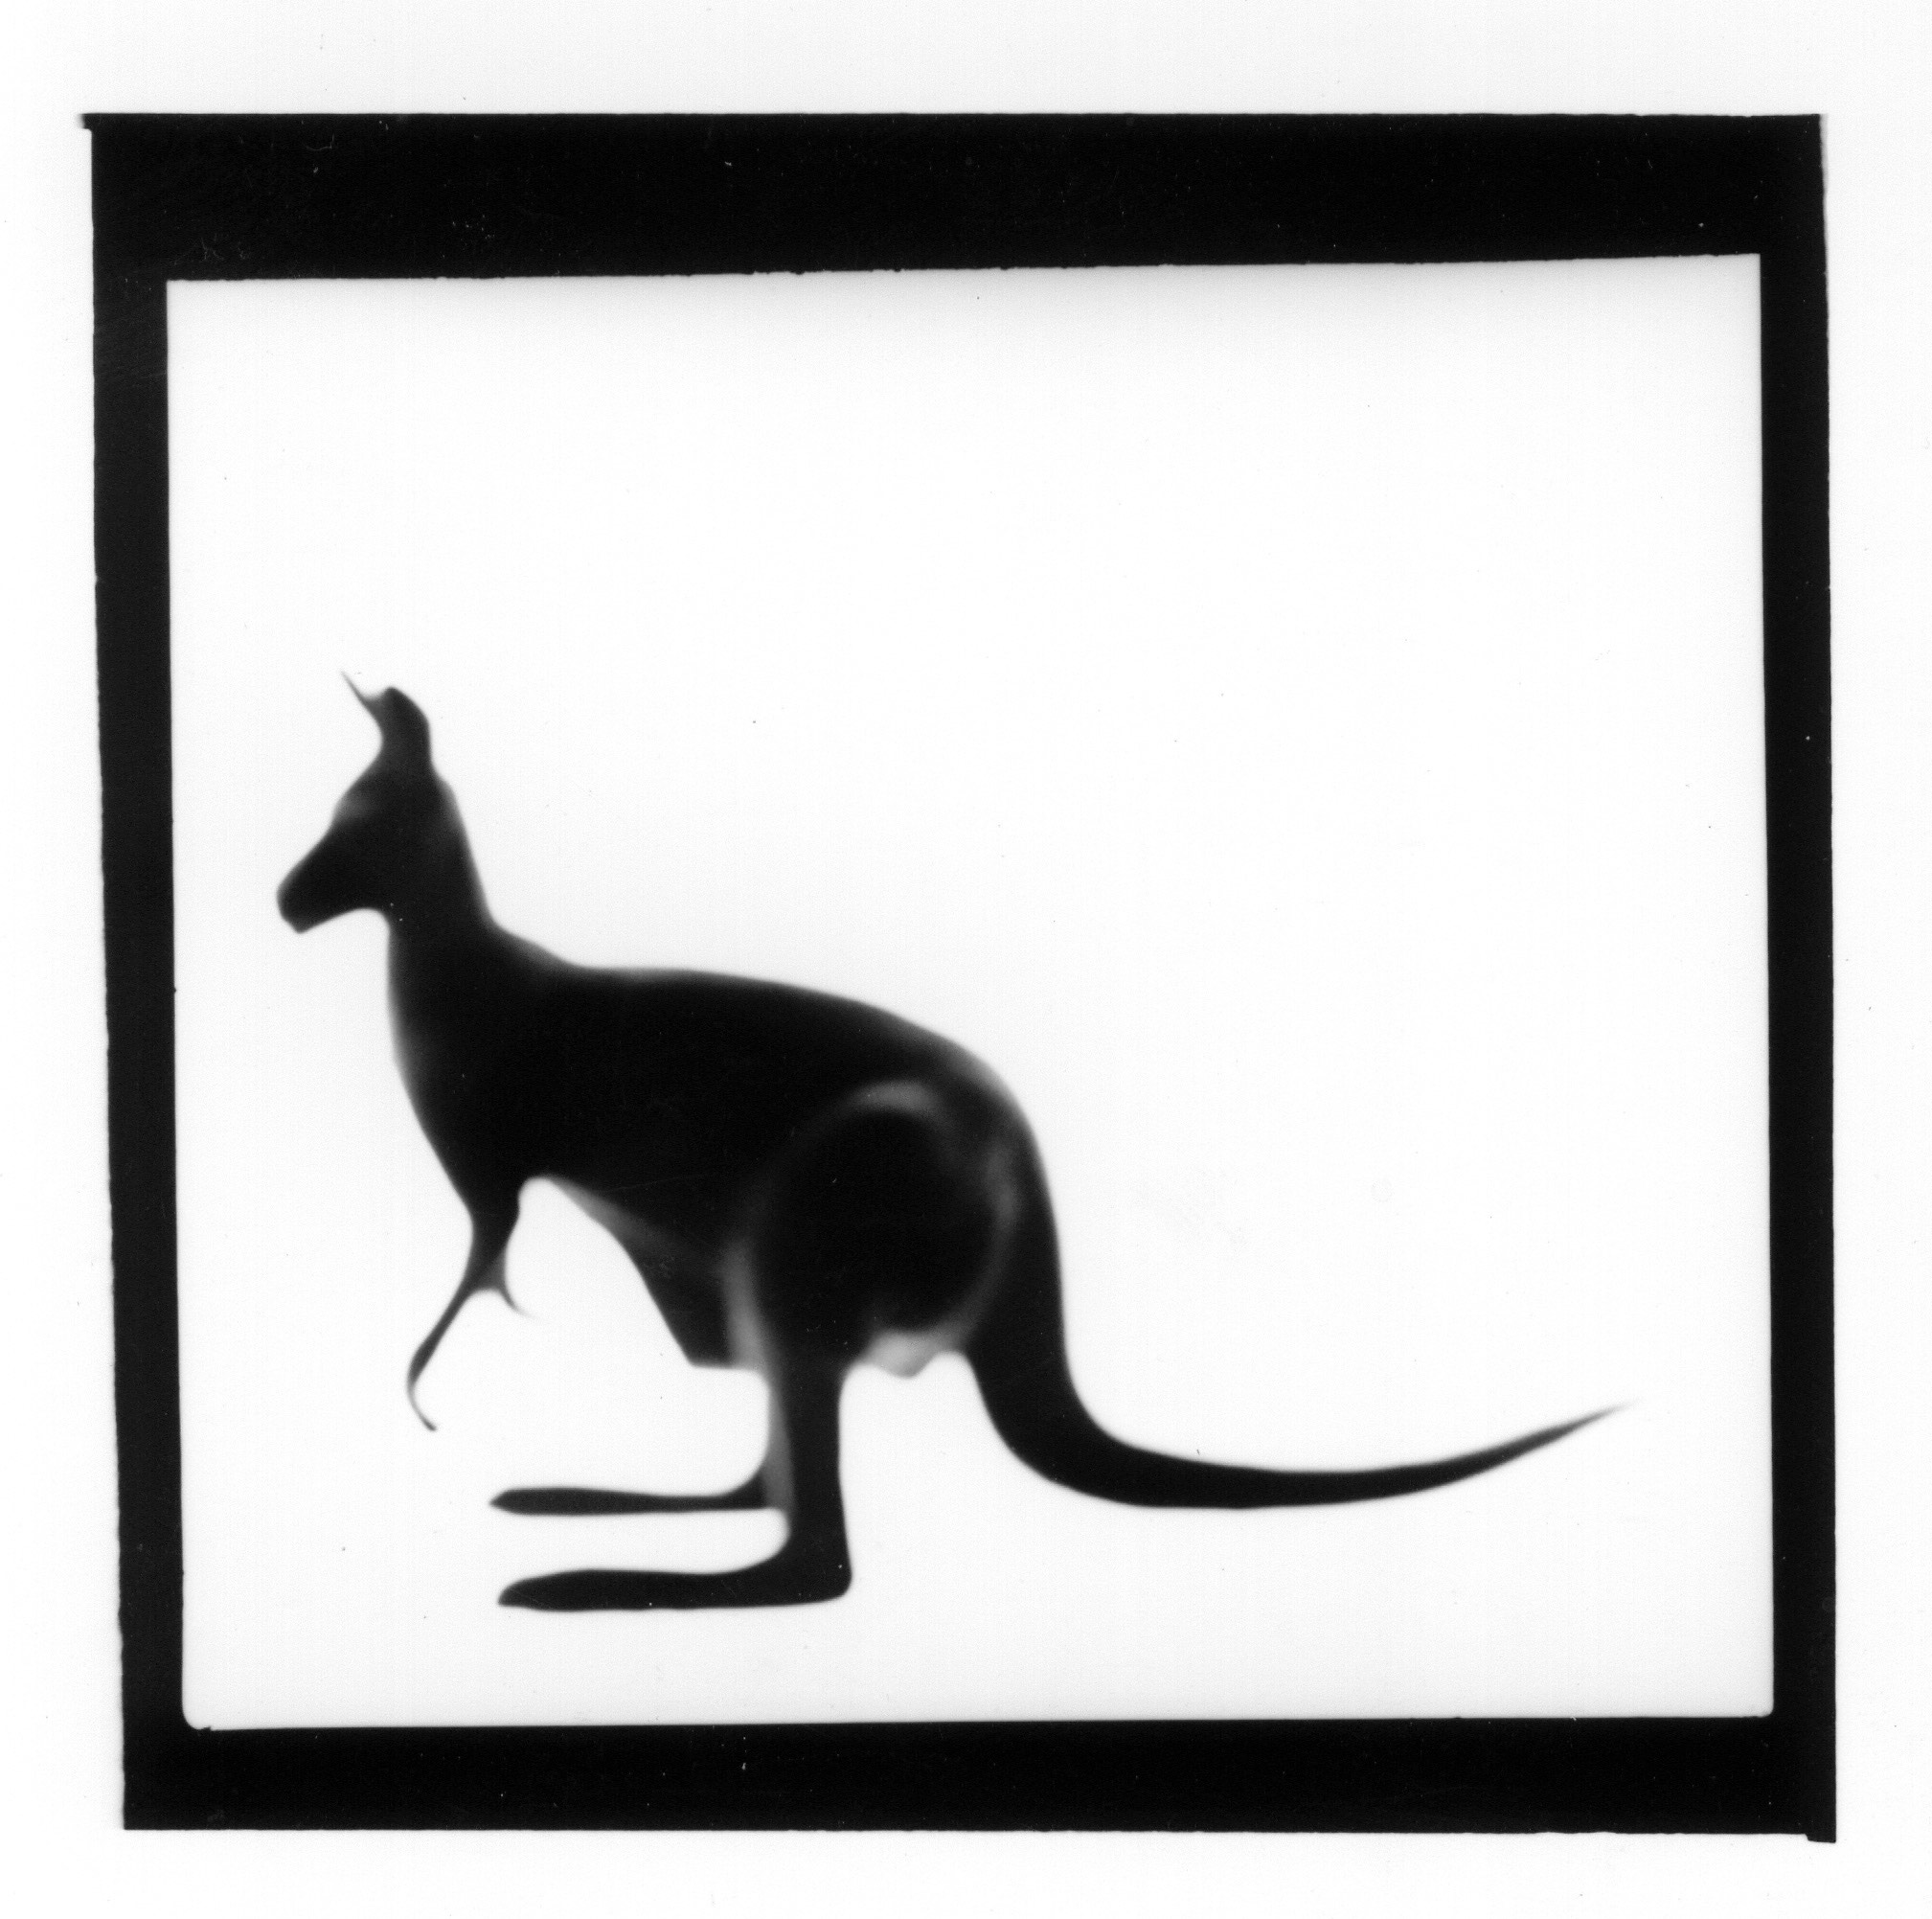 Kangaroo from The Animal Series, 2000